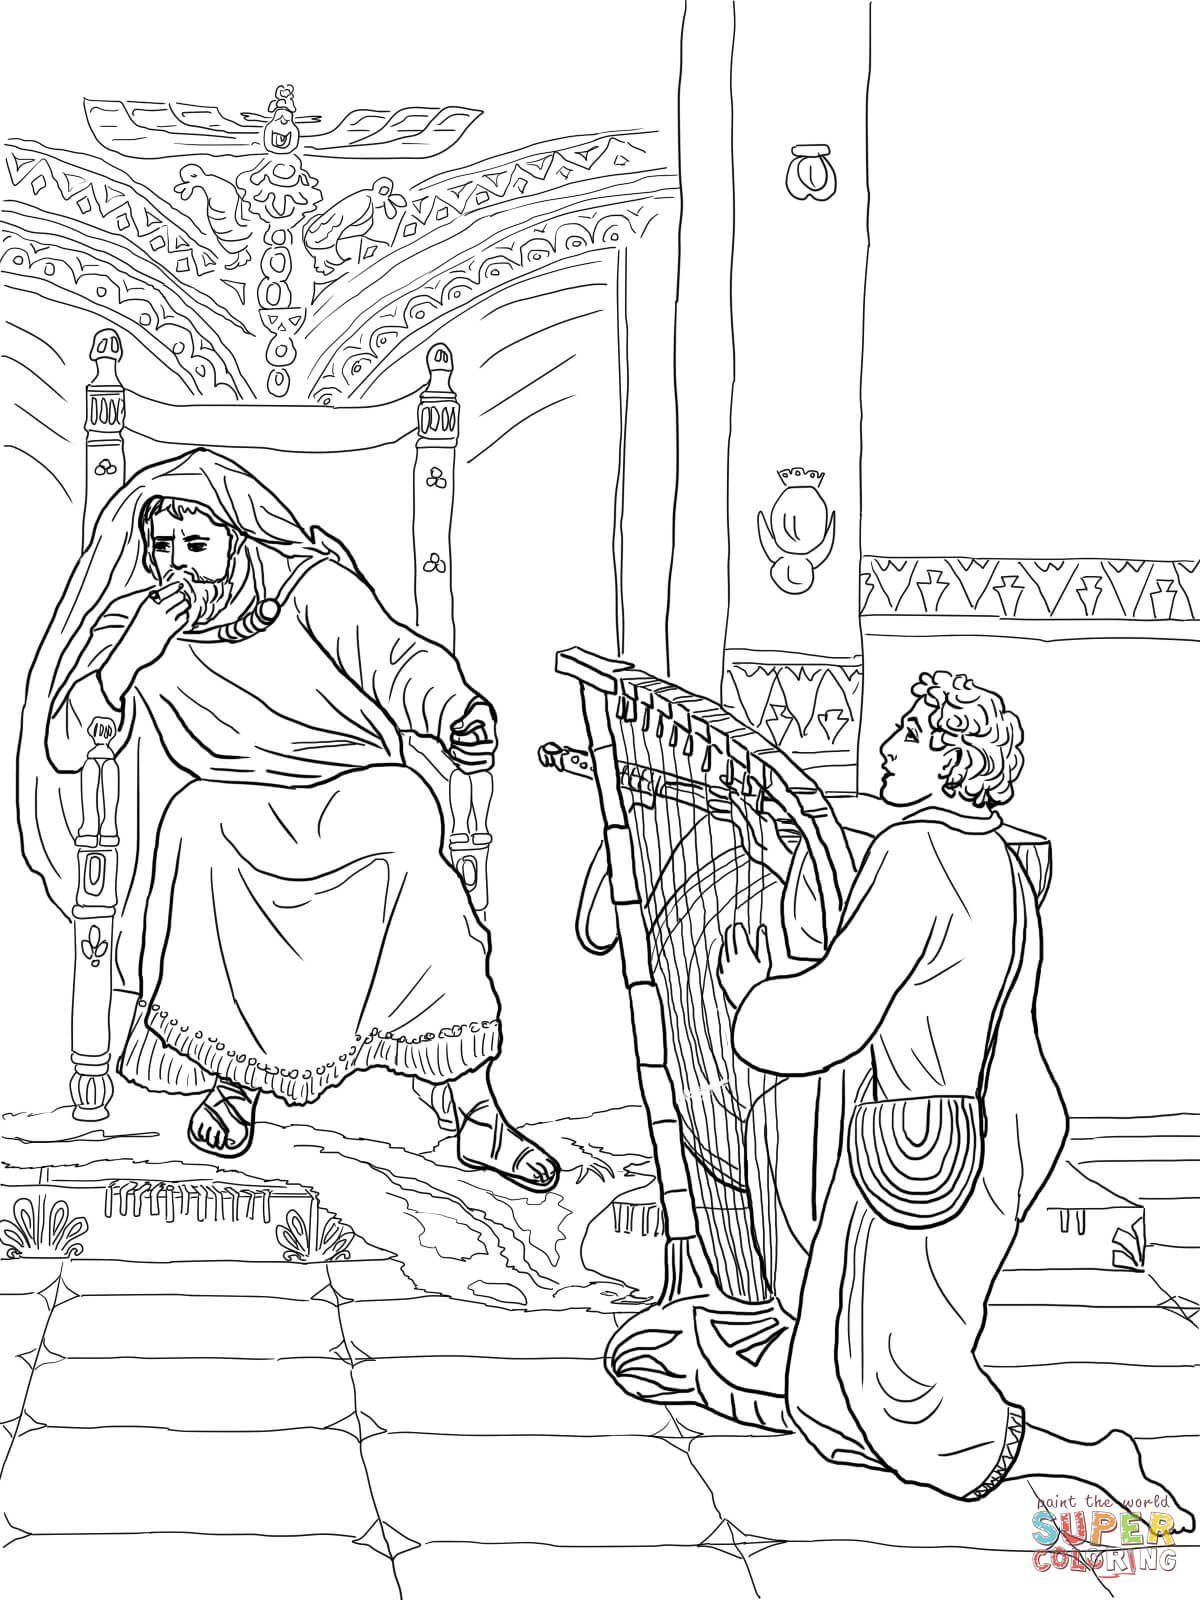 David Plays The Harp For Saul Coloring Page From King David